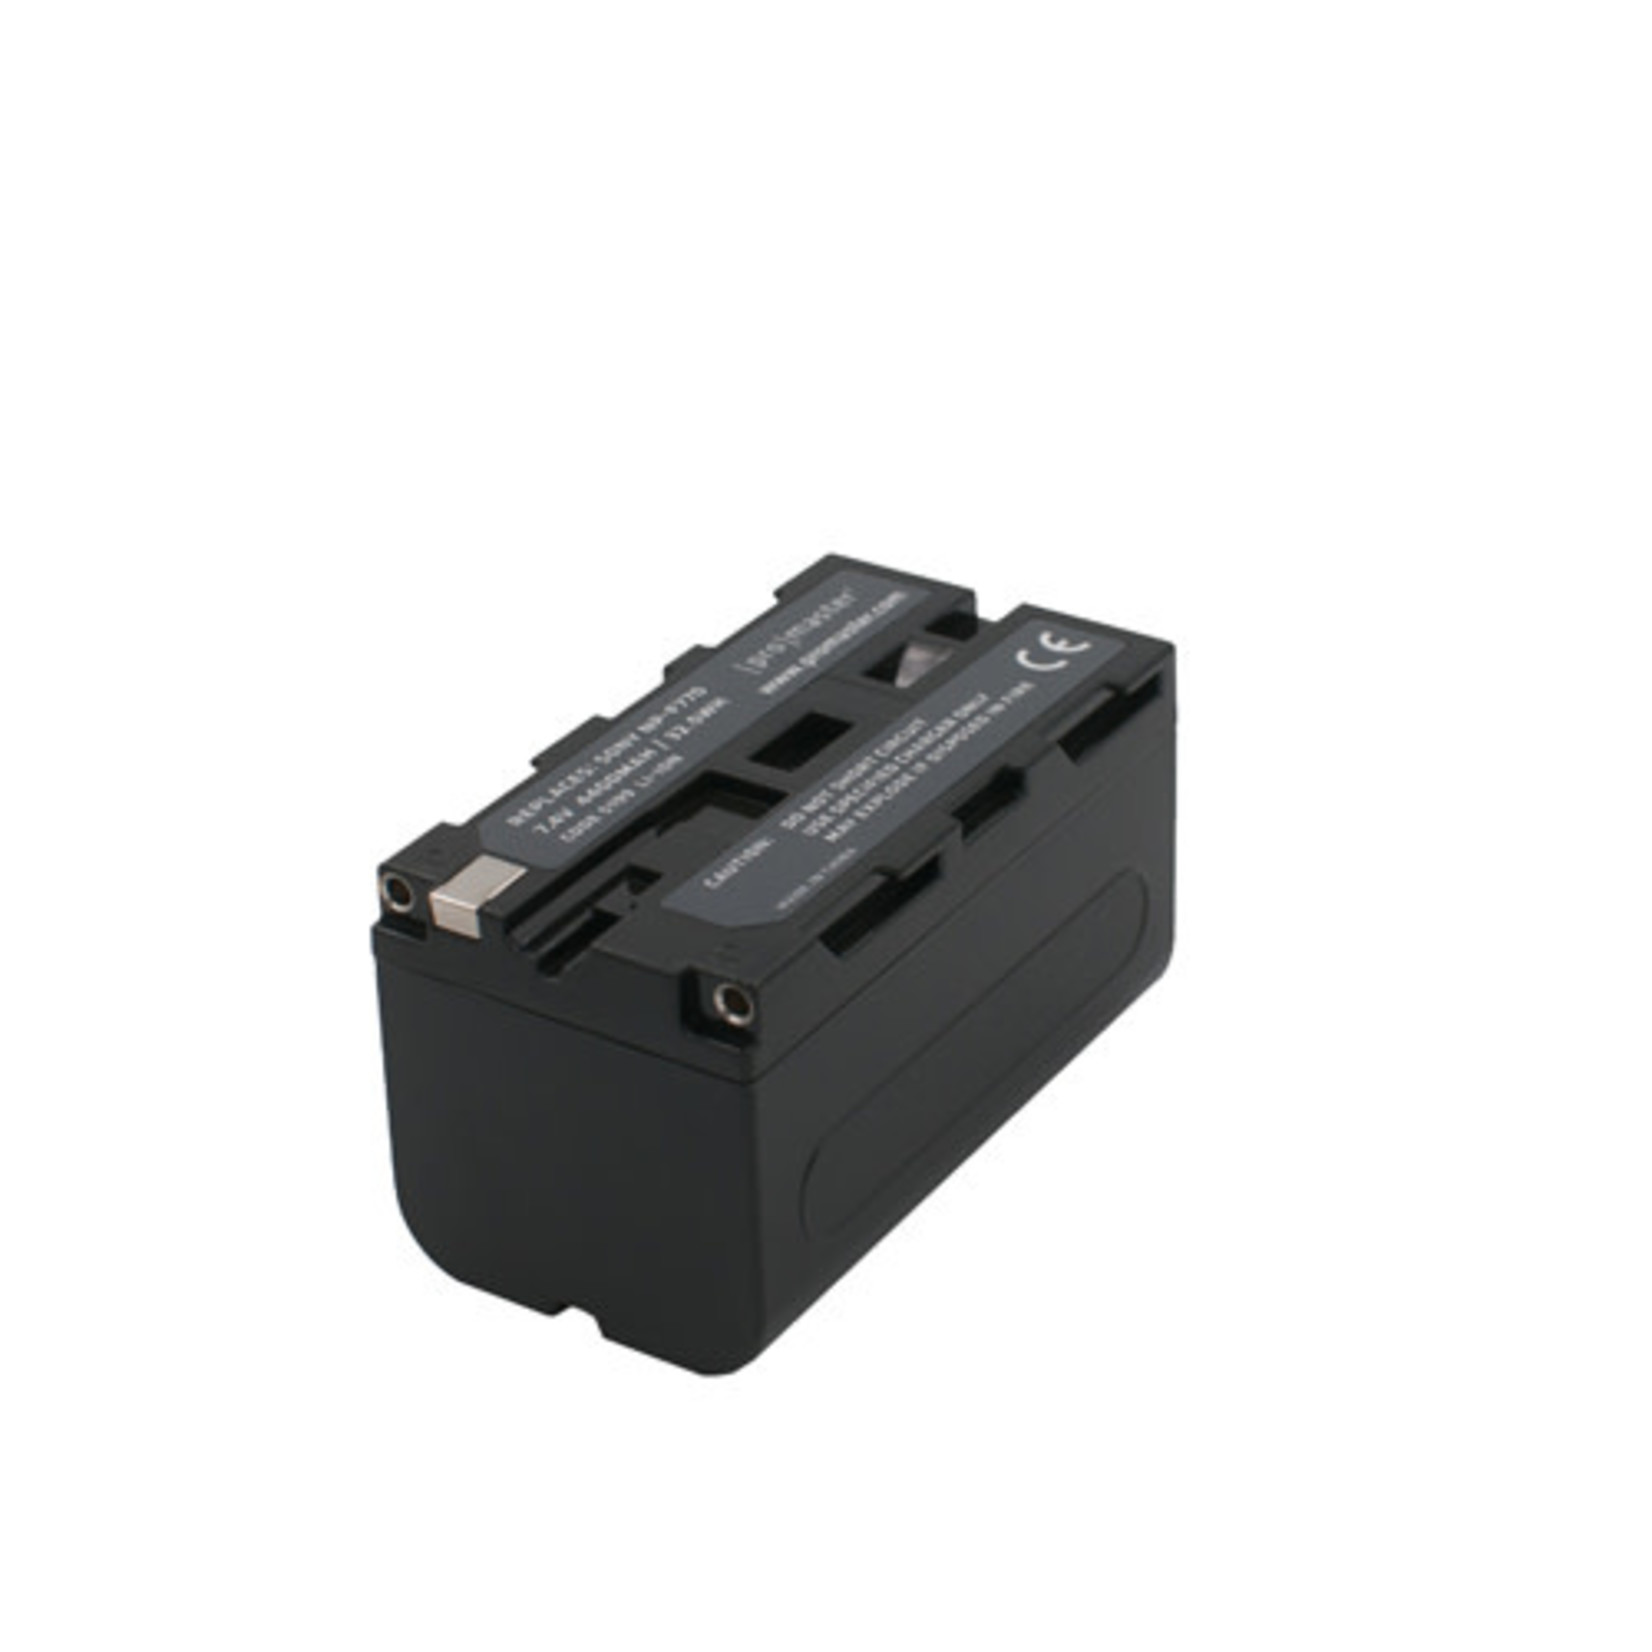 ProMaster Li-ion Battery for Sony NP-F770